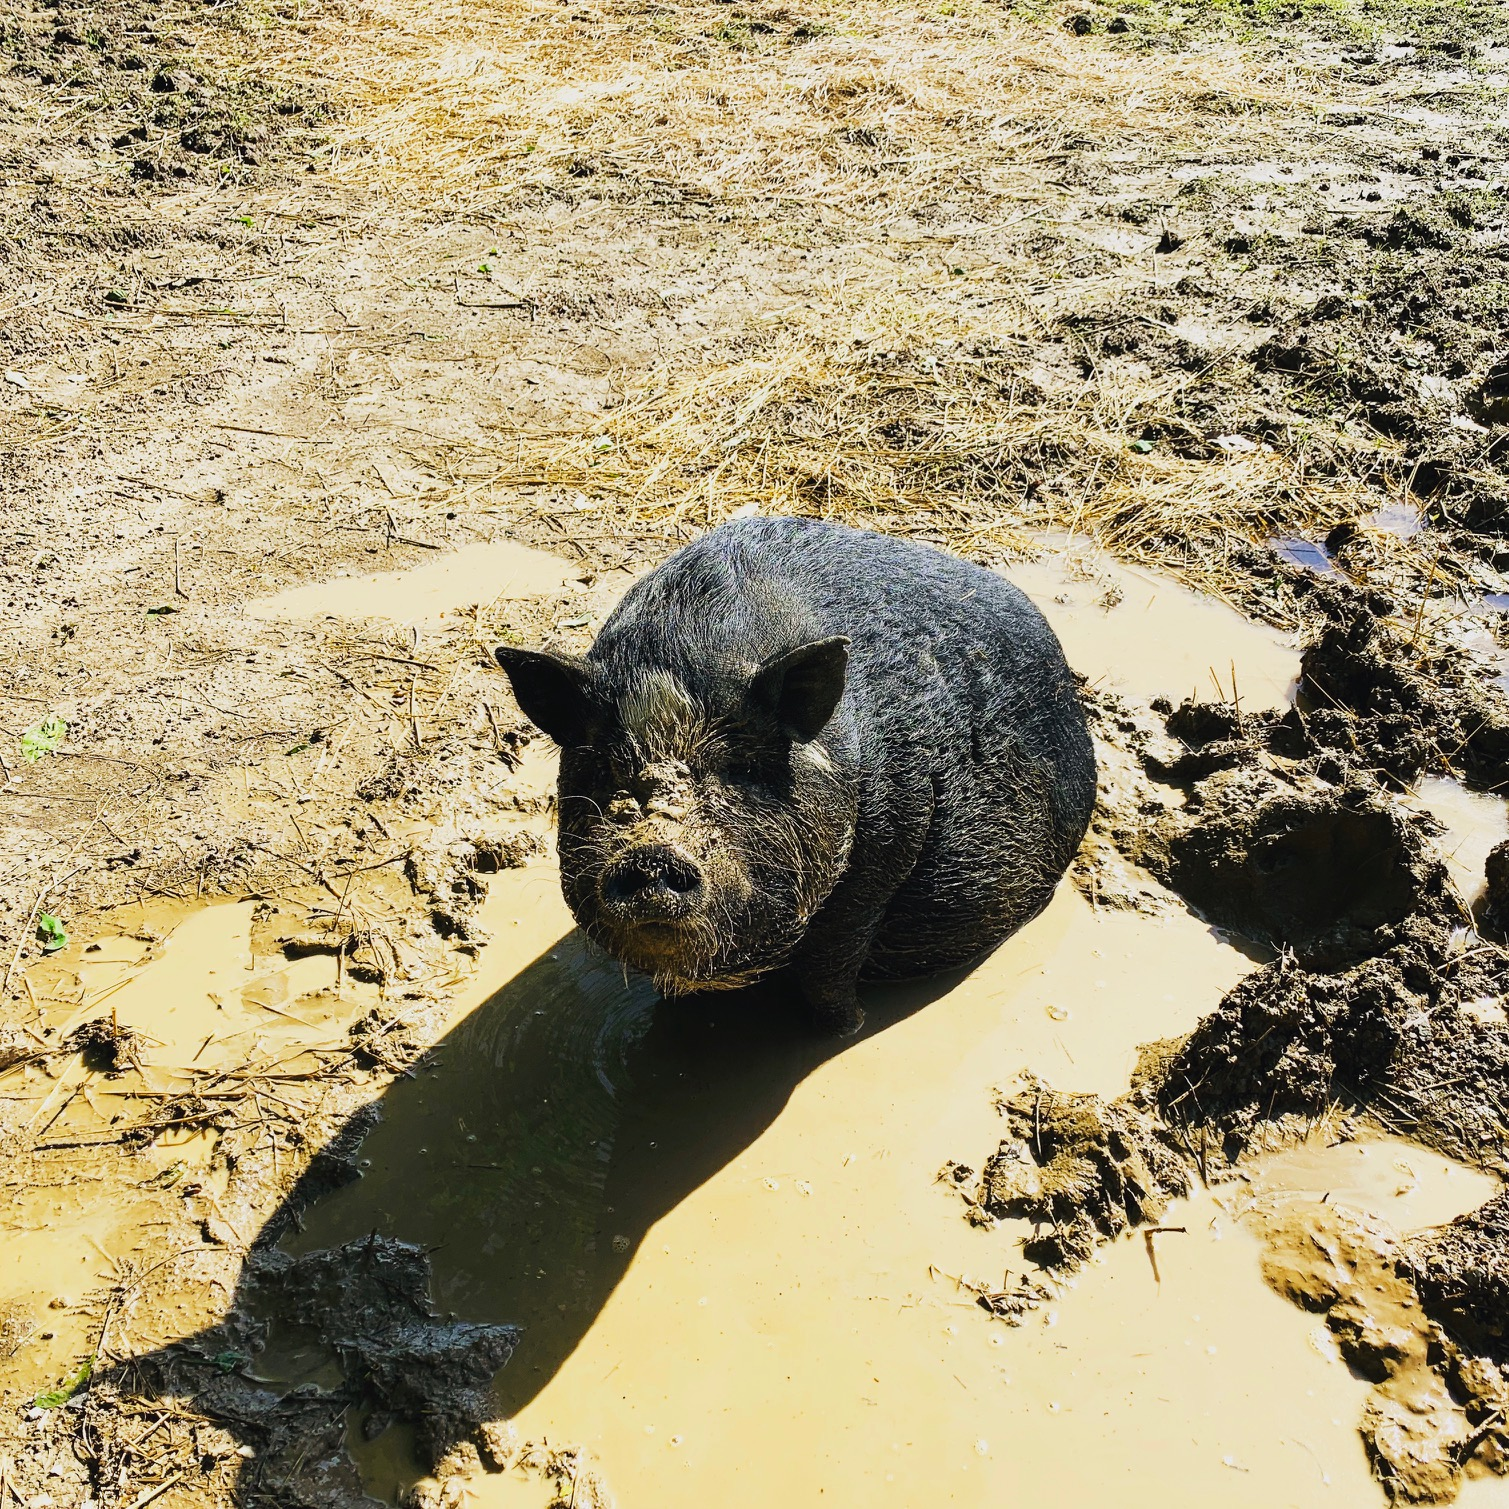 Petunia cools off in a mud puddle.